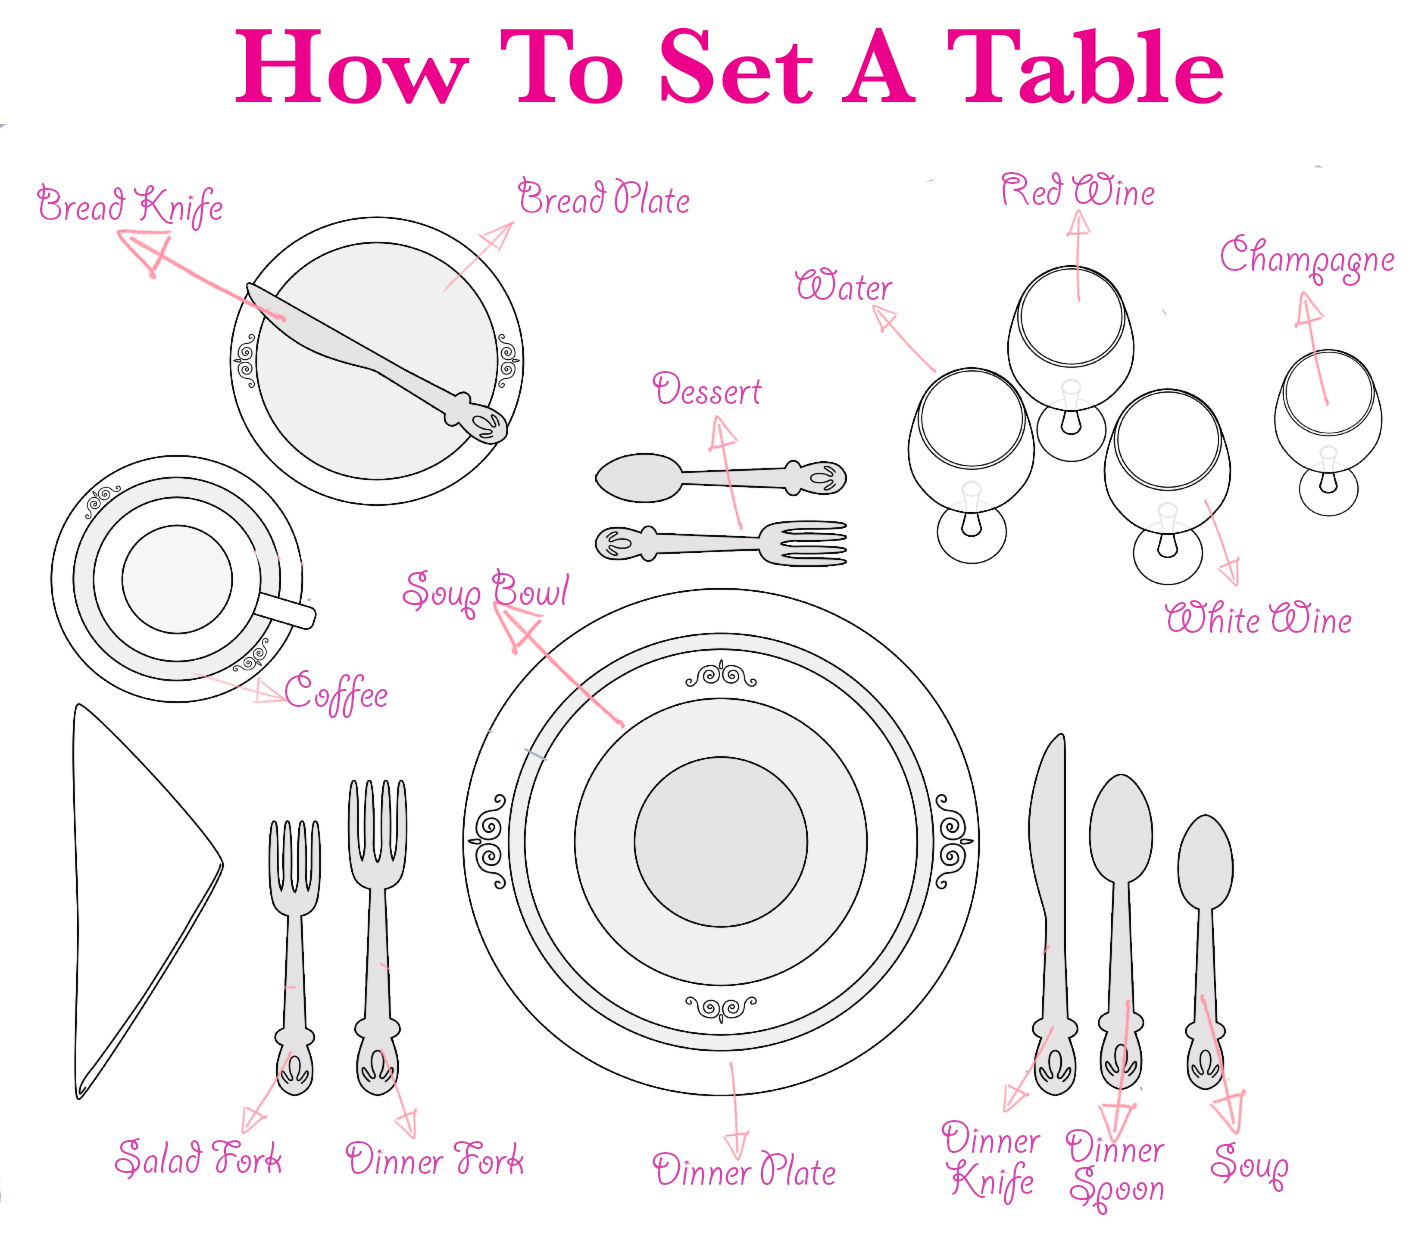 how to set a table setting ideas inspiration pinterest dinner formal shop room ideas forks knives  sc 1 st  Shop Room Ideas & 10 Gorgeous Table Setting Ideas + How To Set Your Table - shoproomideas